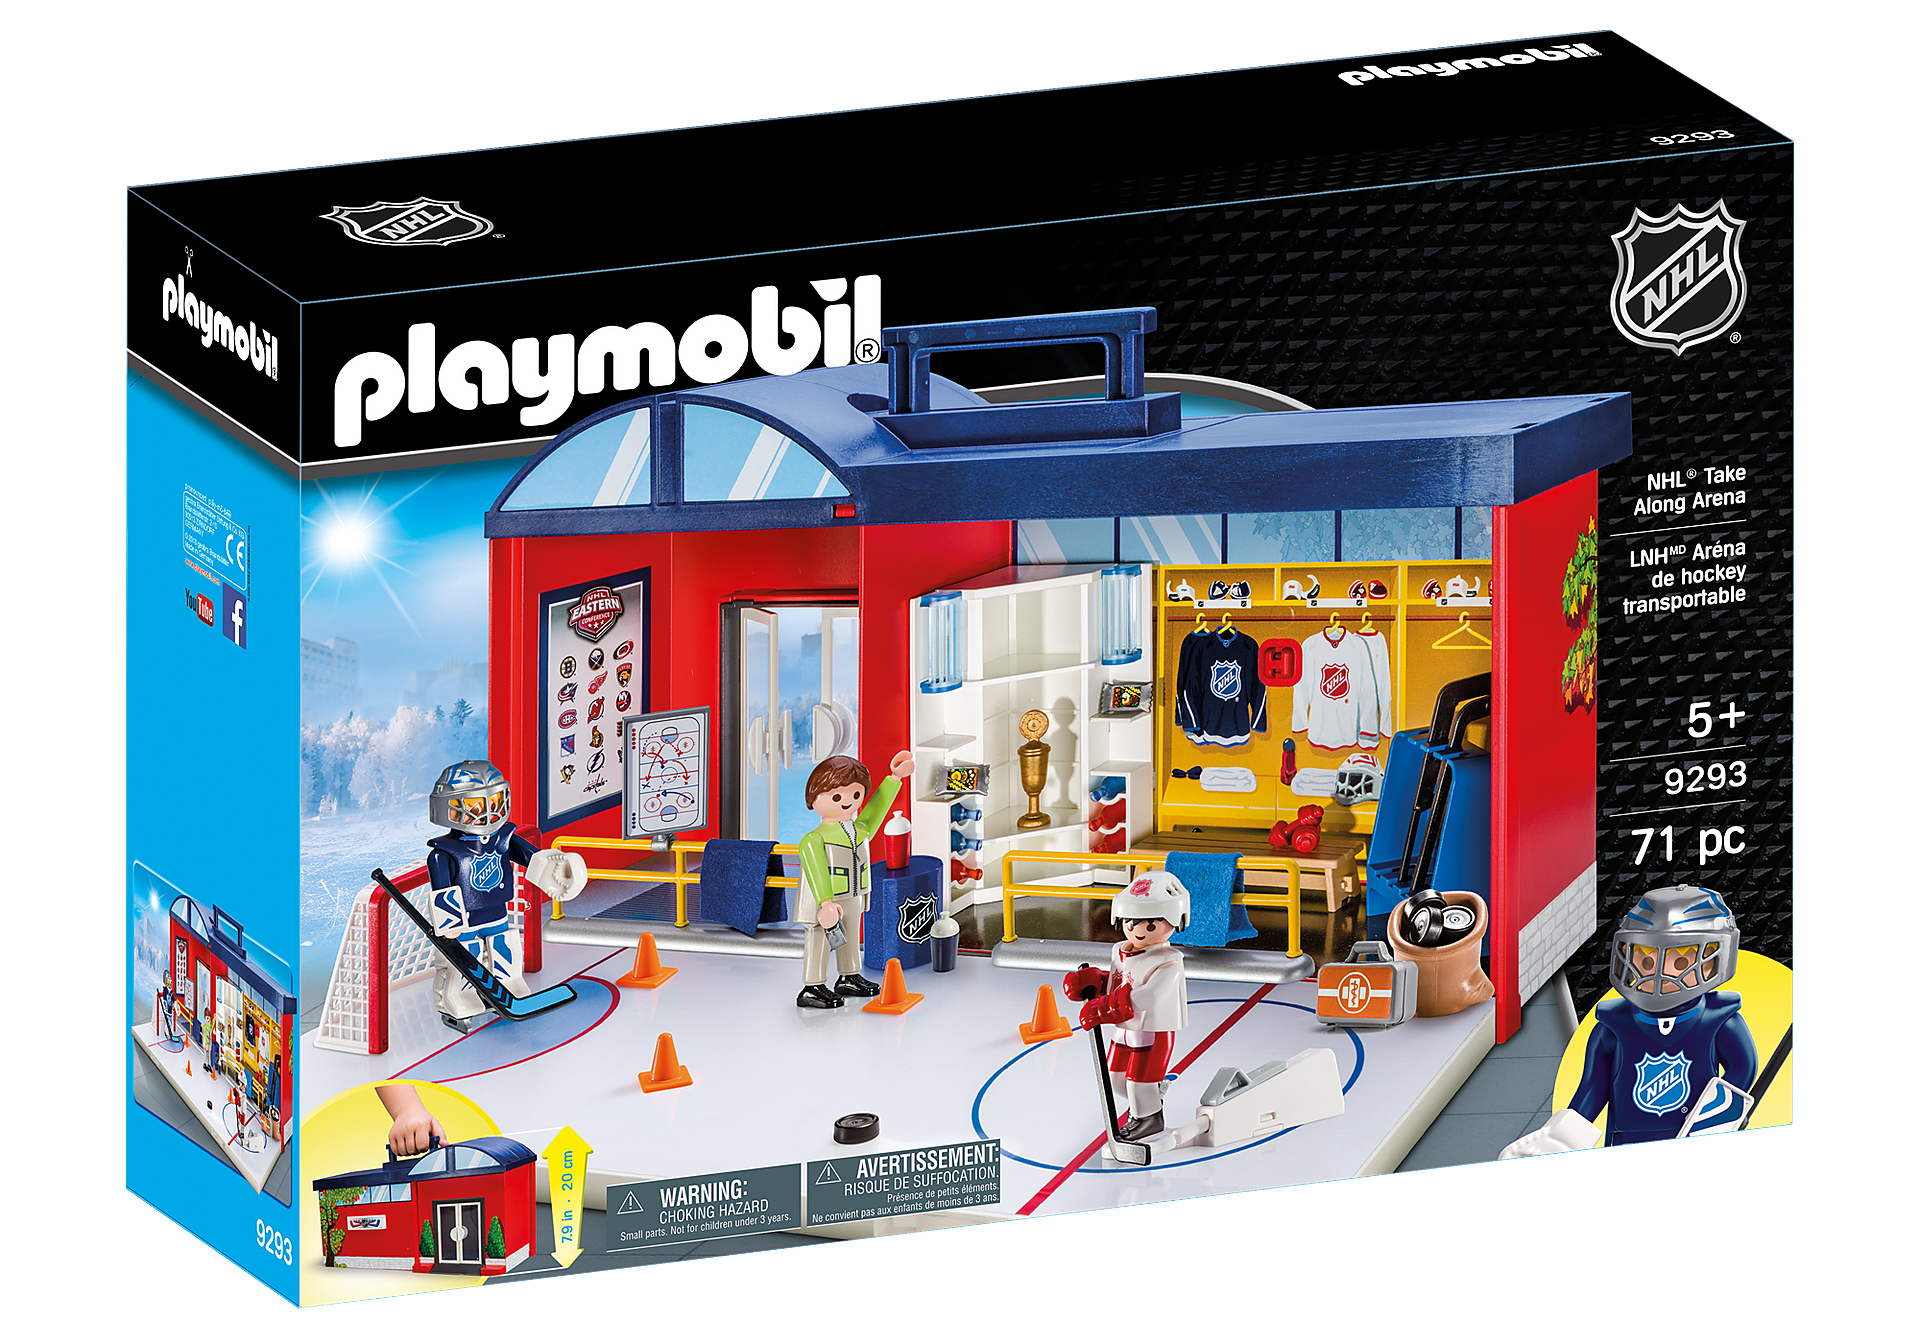 http://media.playmobil.com/i/playmobil/9293_product_box_front/NHL® Take Along Arena